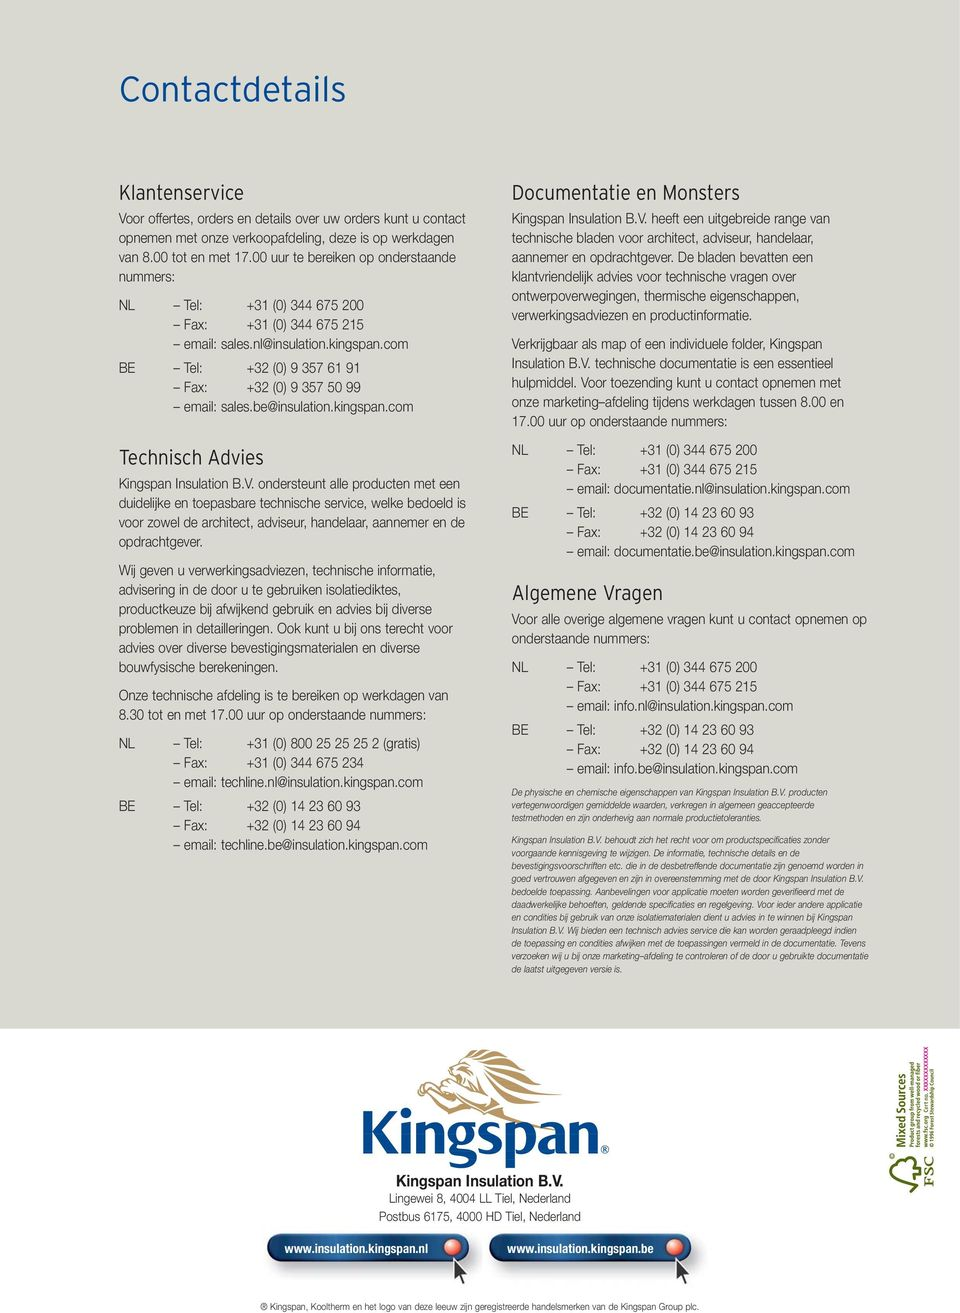 com BE Tel: +32 (0) 9 357 61 91 Fax: +32 (0) 9 357 50 99 email: sales.be@insulation.kingspan.com Technisch Advies Kingspan Insulation B.V.